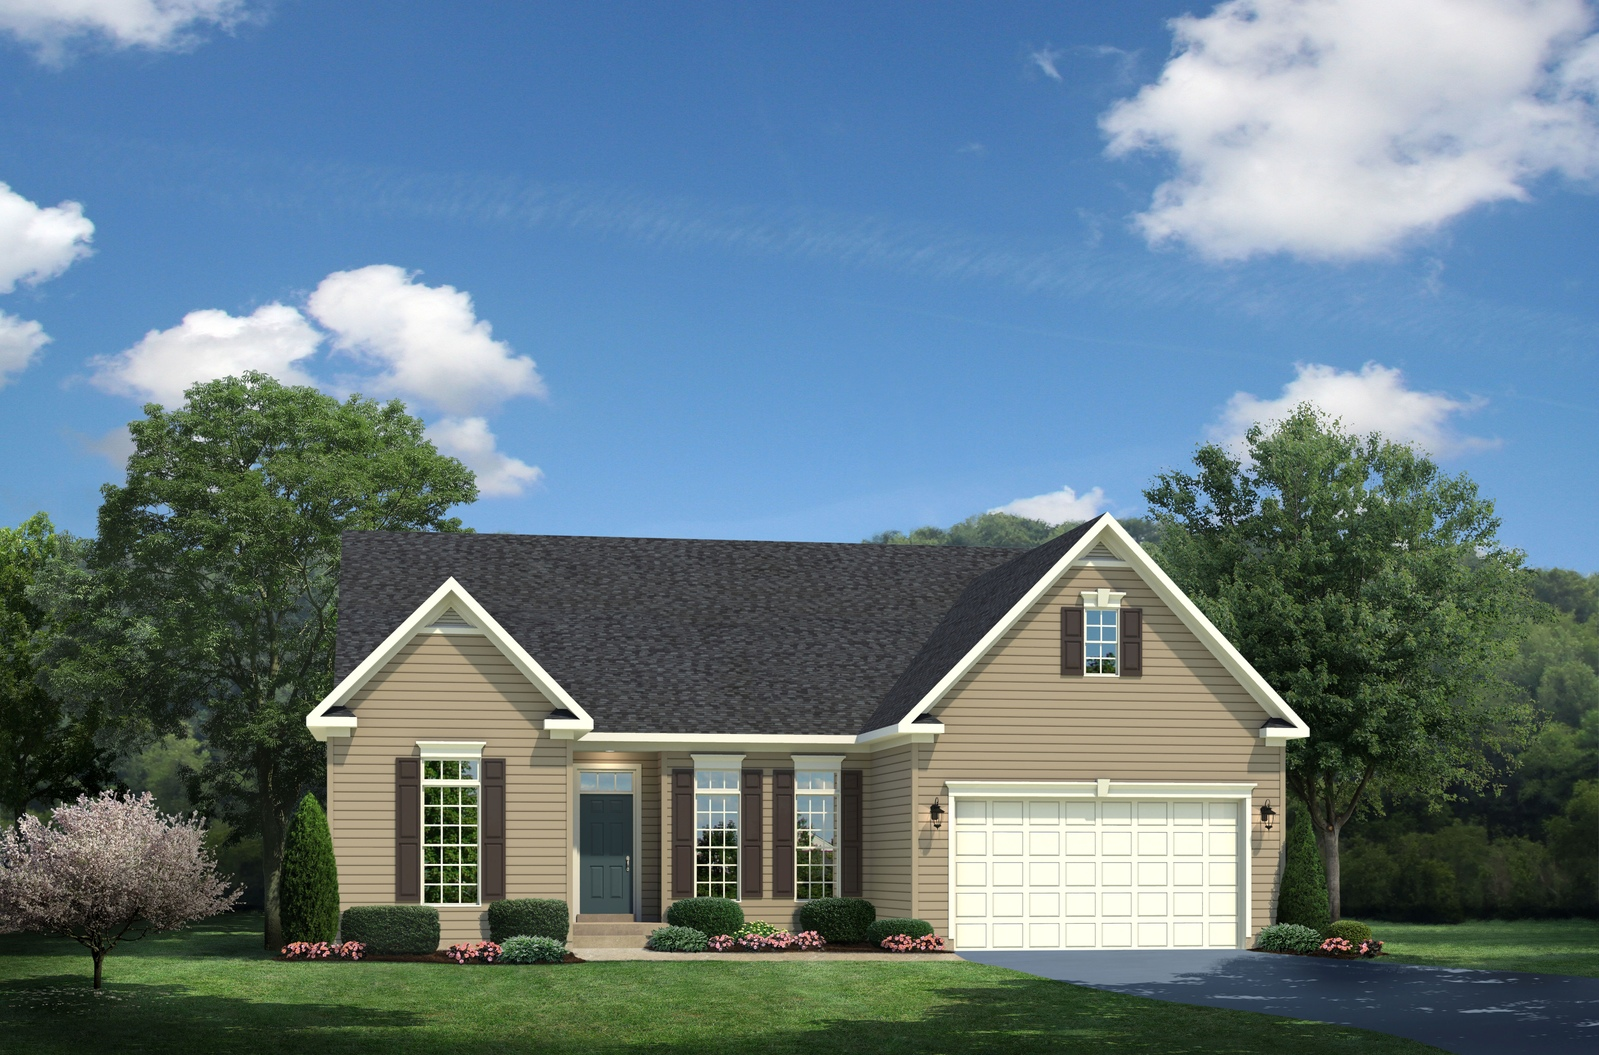 New springmanor home model for sale at marbury for Db ranch